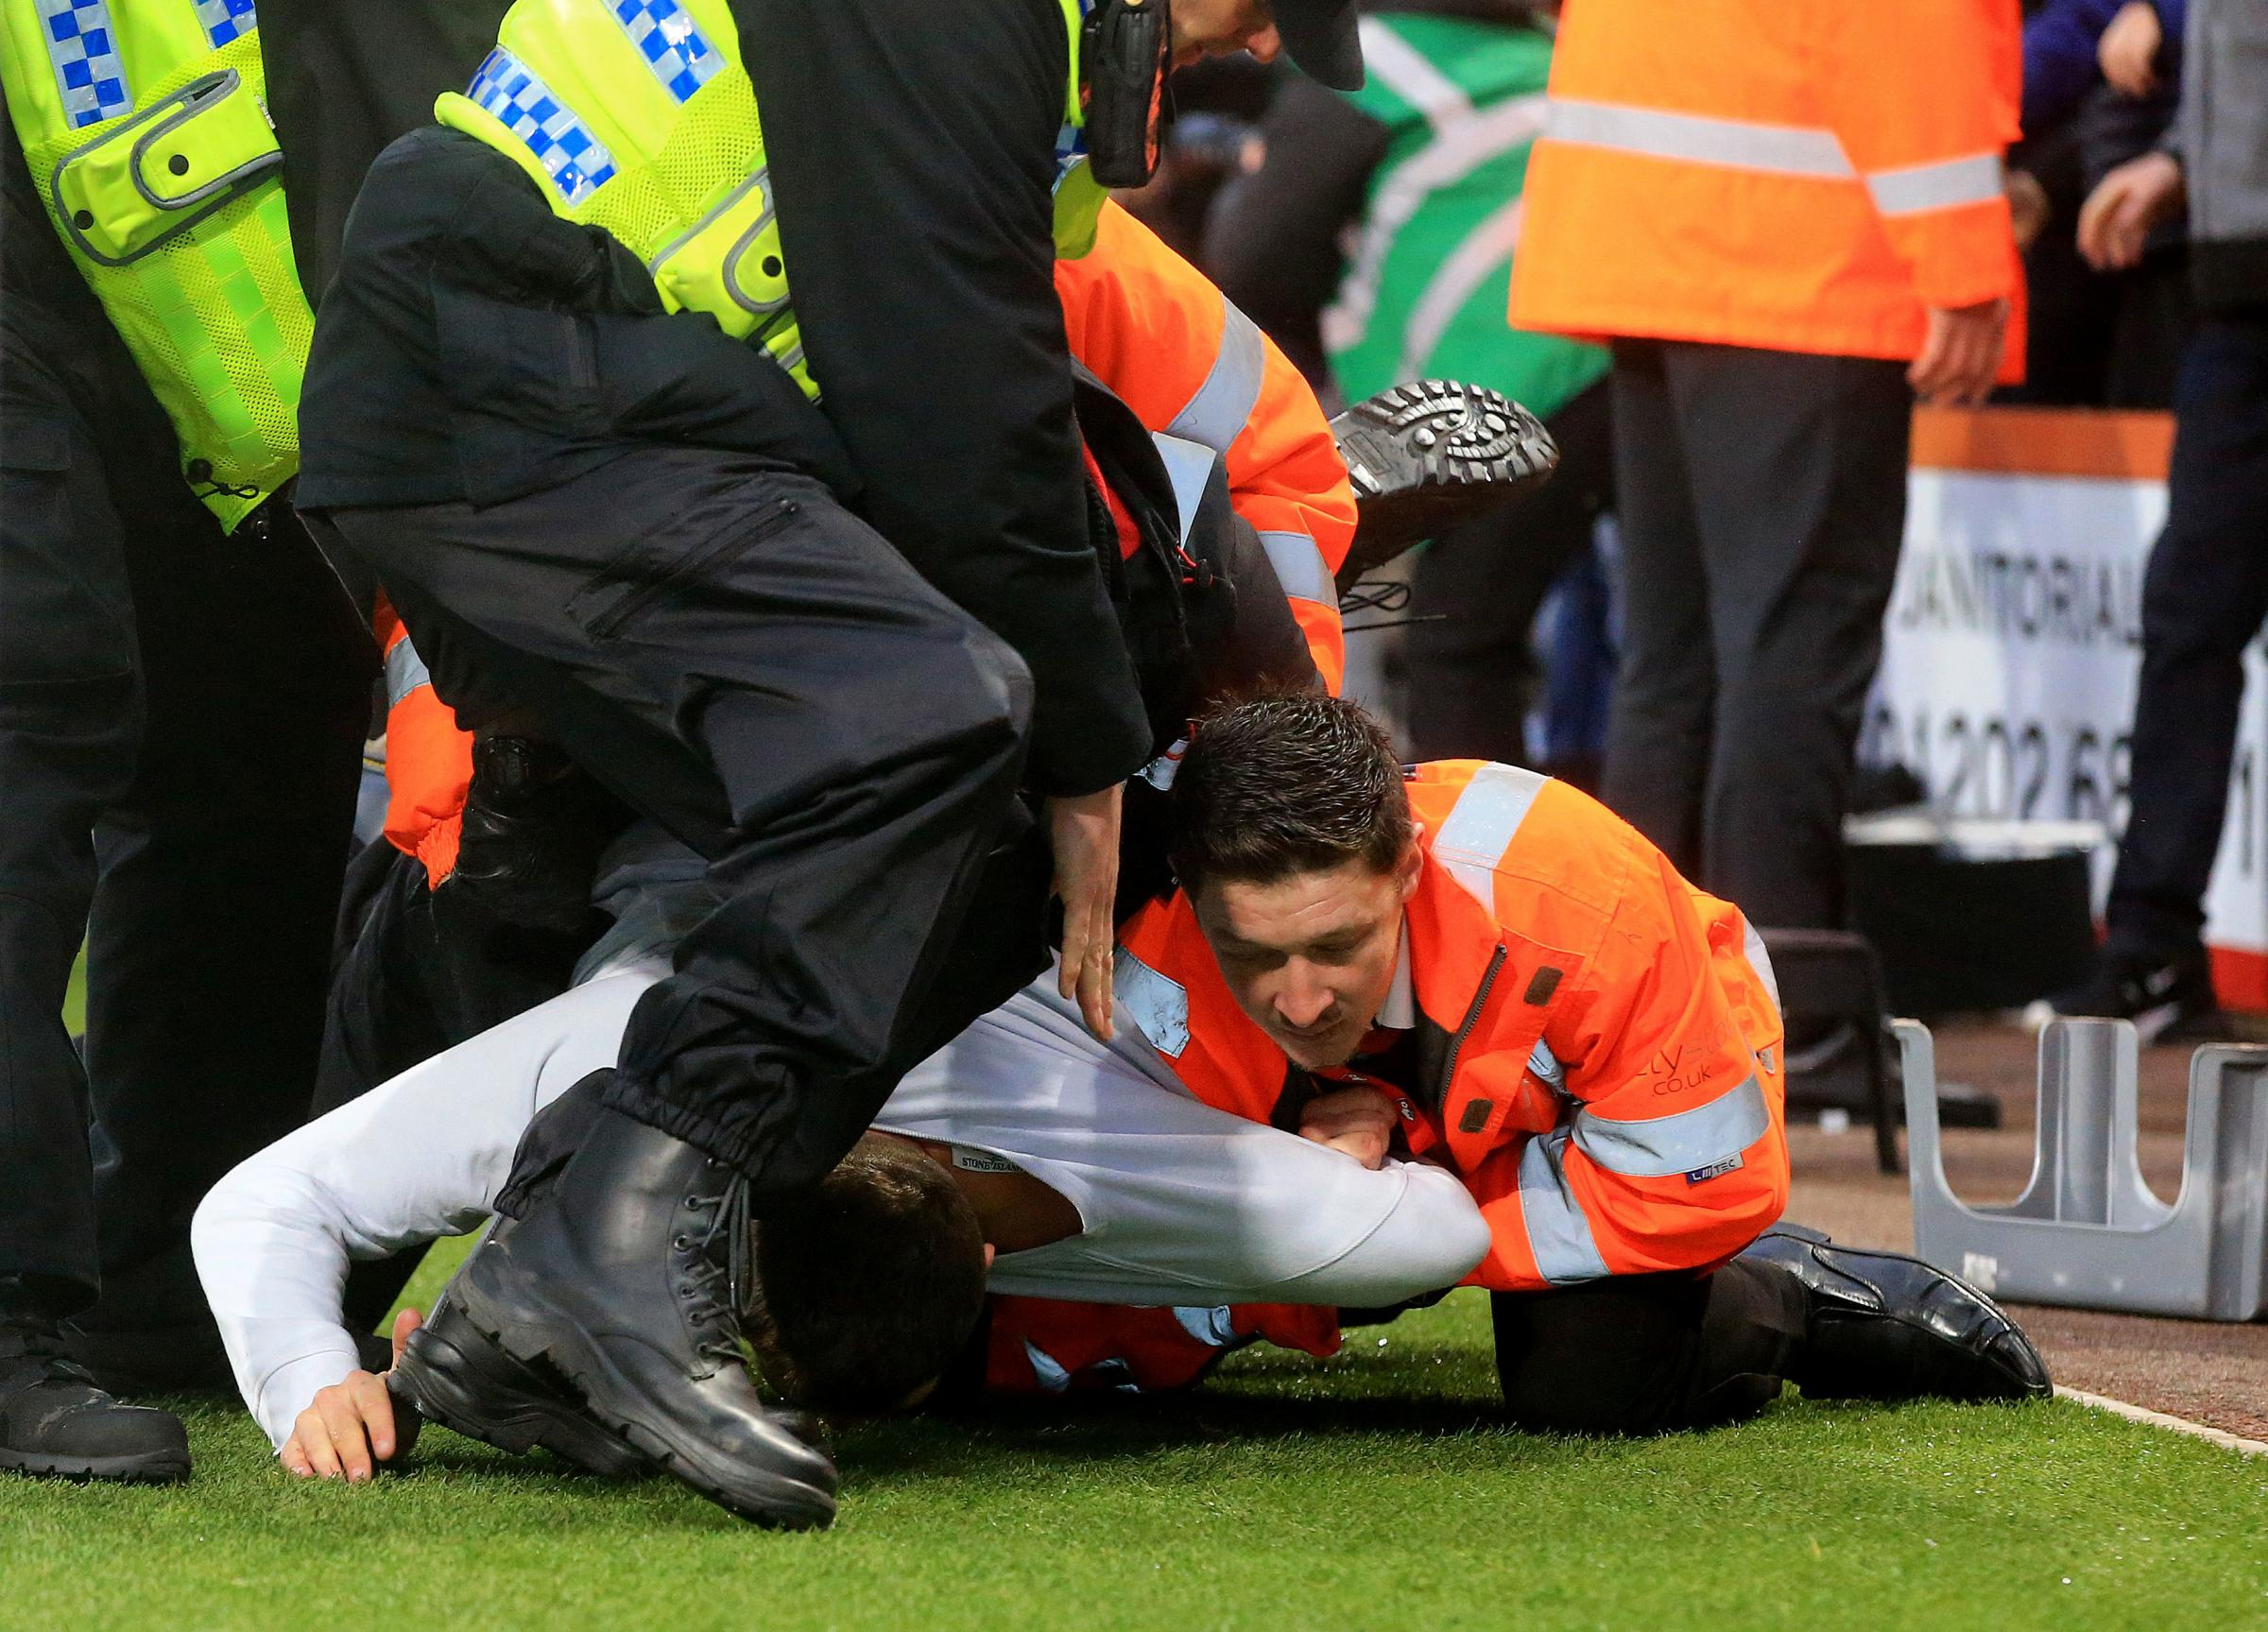 A Newcastle United fan is removed from the pitch by stewards and police after invading the pitch during the Premier League match at the Vitality Stadium, Bournemouth. PRESS ASSOCIATION Photo. Picture date: Saturday March 16, 2019. See PA story SOCCER Bou